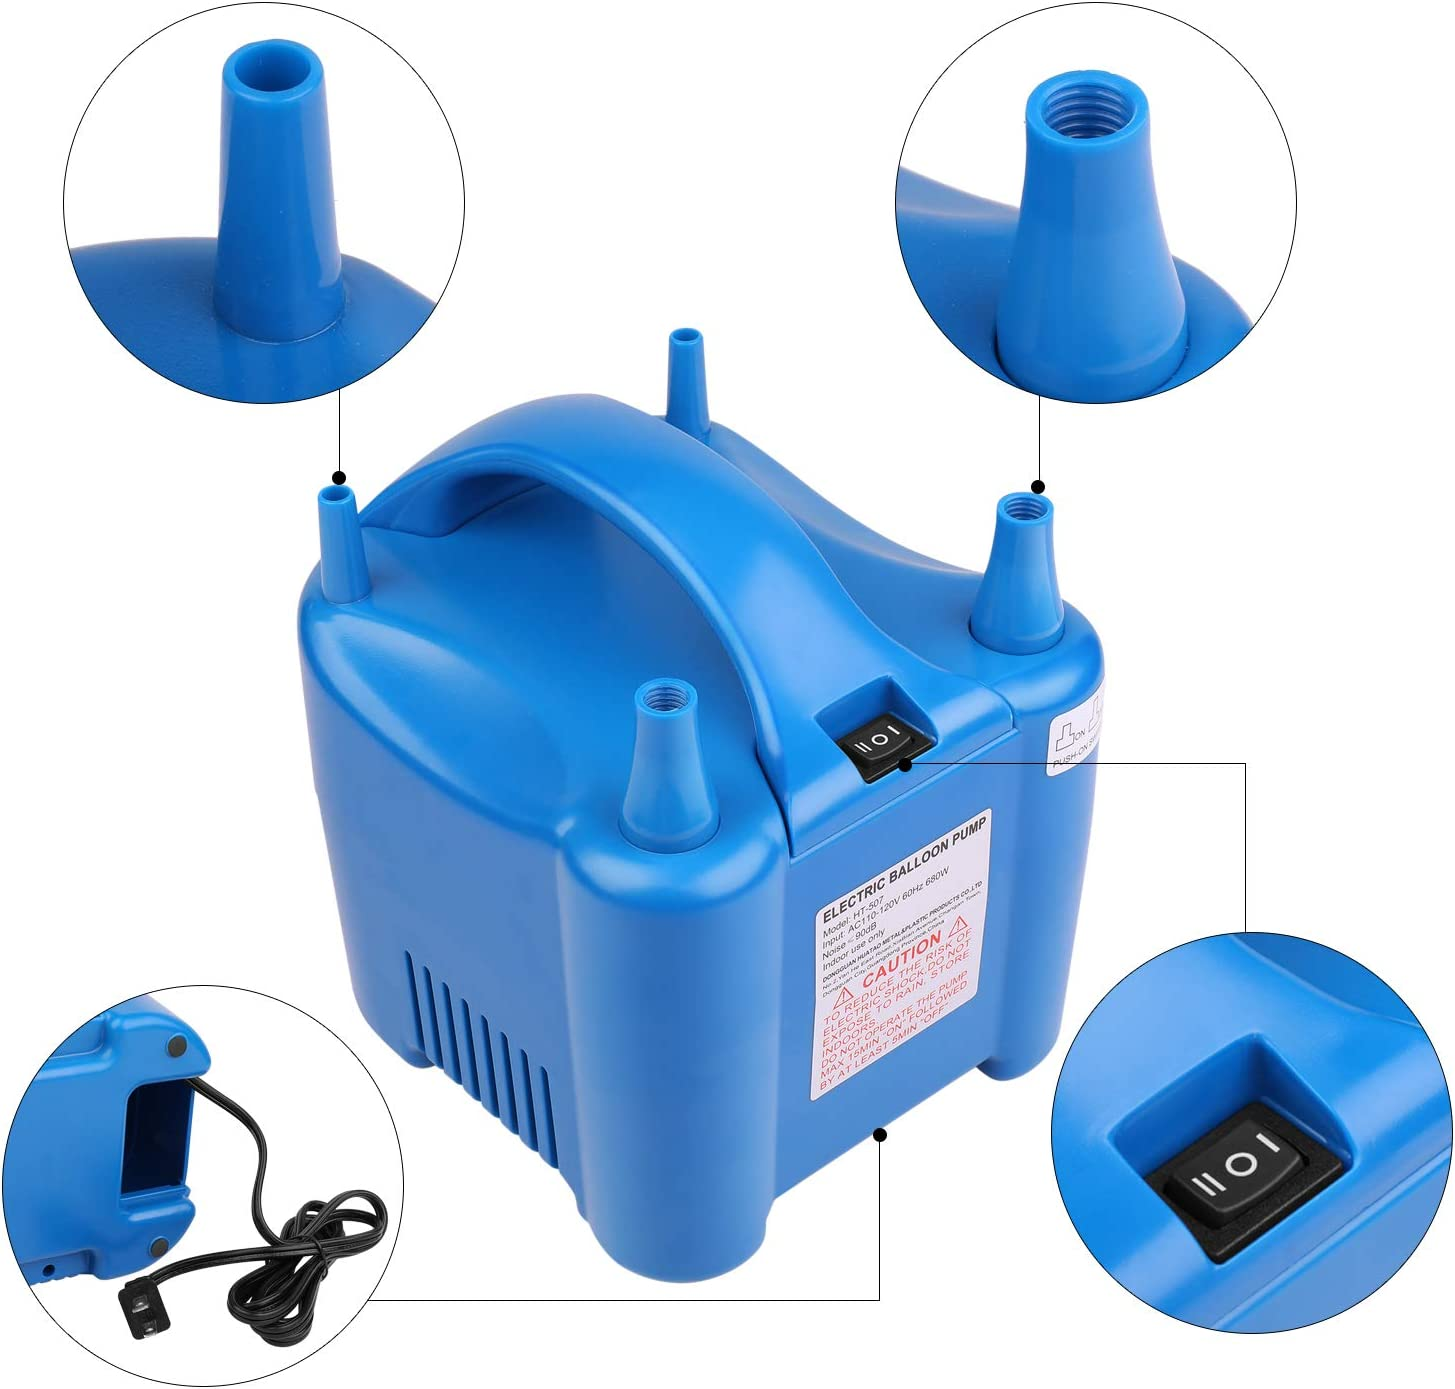 Portable Dual Nozzle Inflator Blower with Built-in Motor Advanced Wire Storage for Kids Children Birthday Party Wedding Sports Holiday Festival Decoration Flexzion Electric Air Balloon Pump